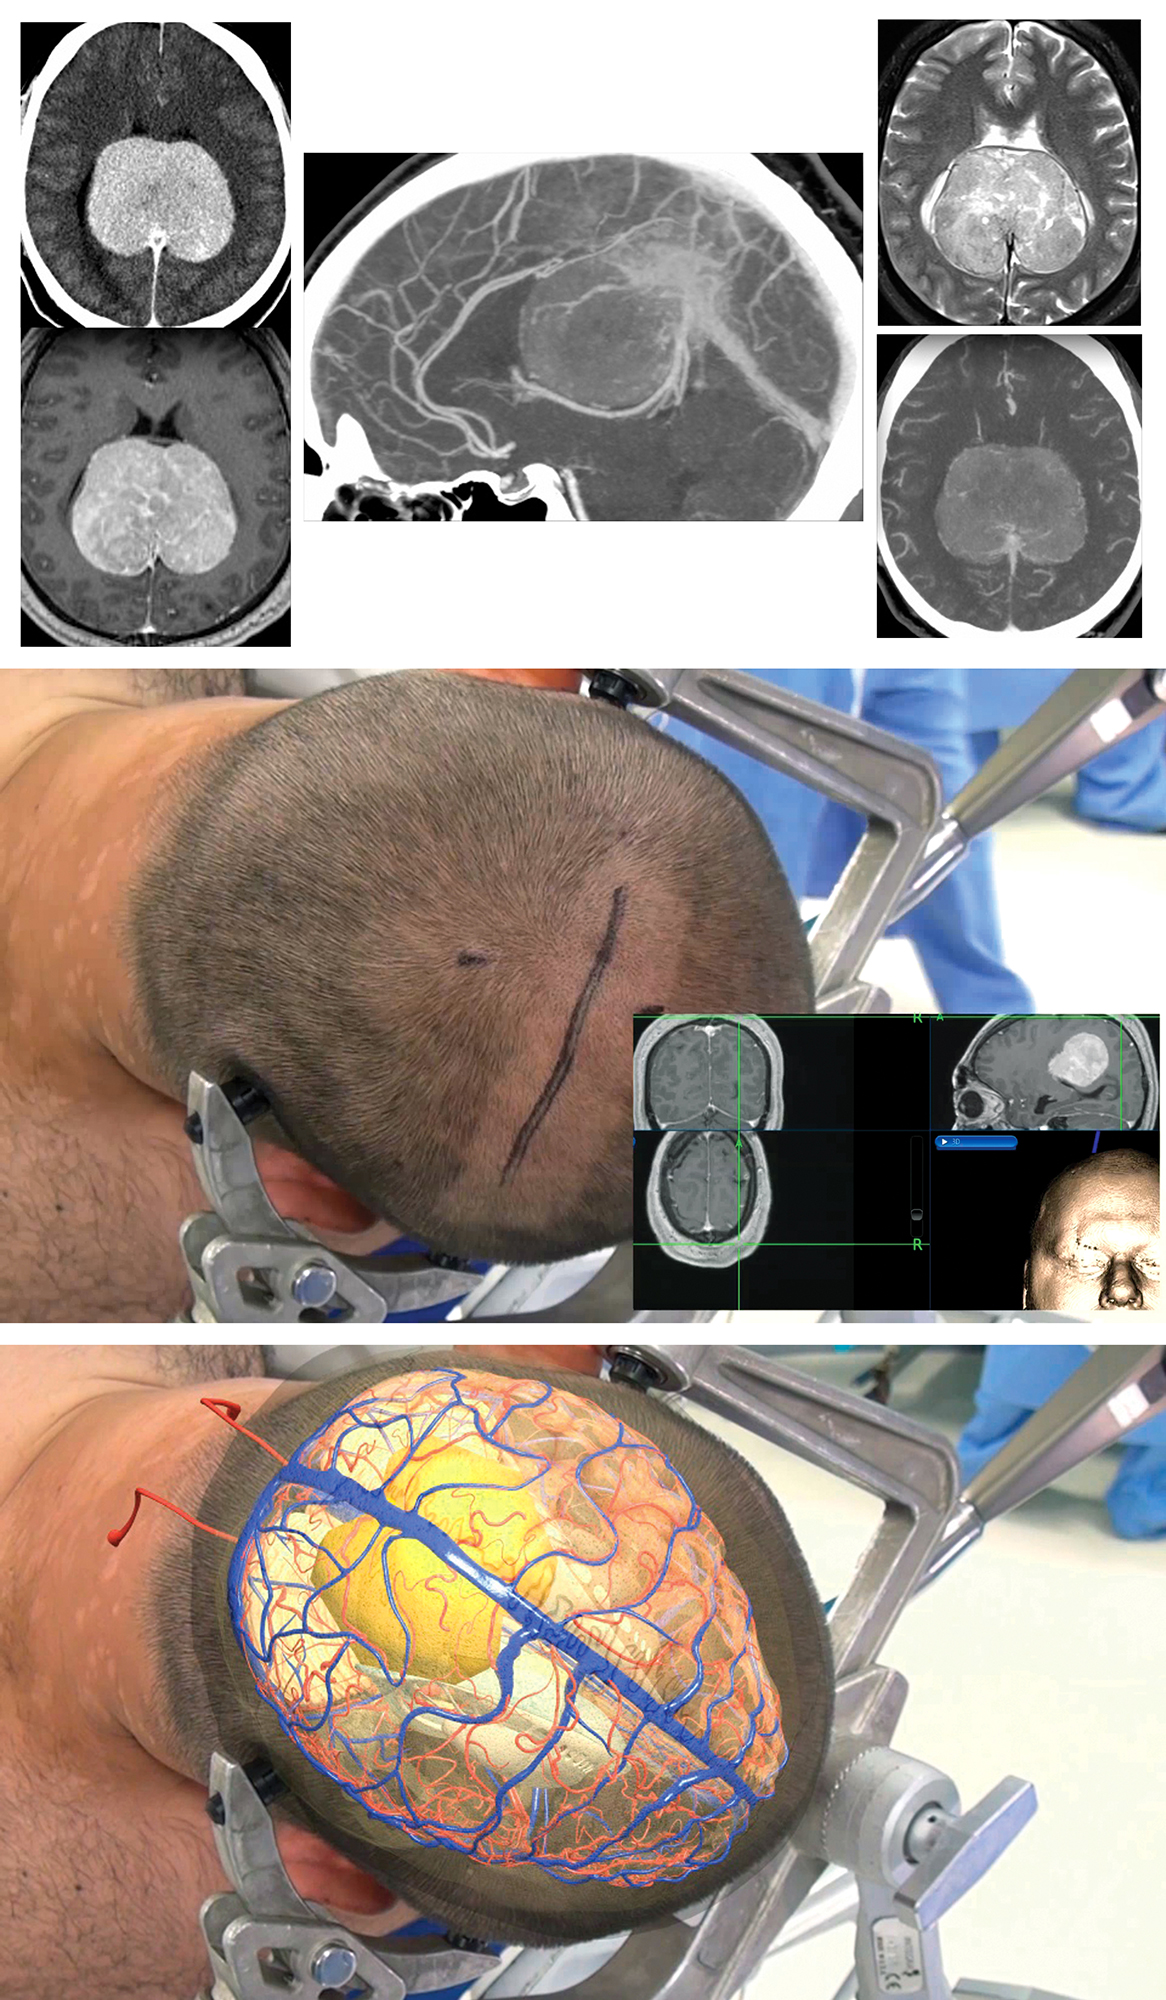 Figure 3: A giant parafalcine tumor (top images) was approached through a unilateral linear incision and transfalcine route using gravity retraction. The lateral position mobilizes the dependent nondominant hemisphere away from the midline (middle image). The location of the tumor is illustrated through the overlay model (bottom image).